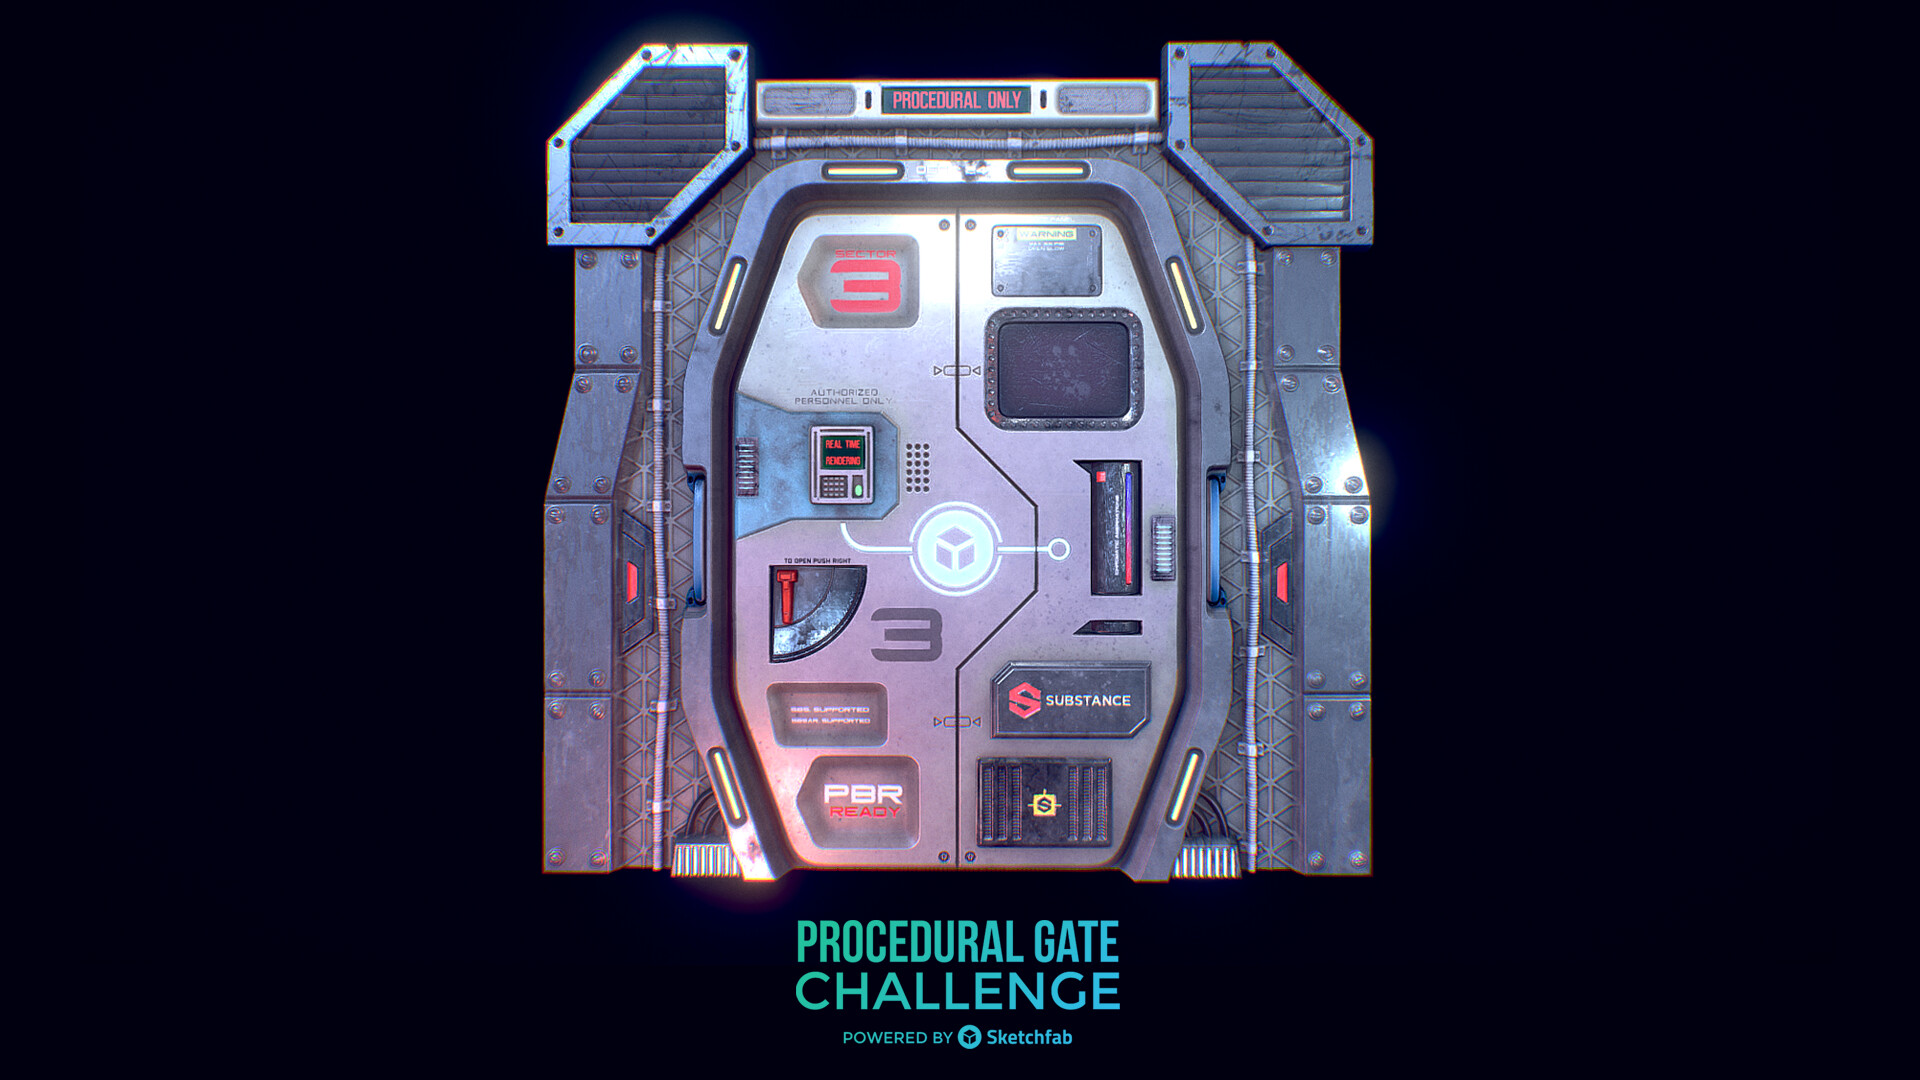 ArtStation - #ProceduralGateChallenge - Sci Fi Gate (Download), Raúl